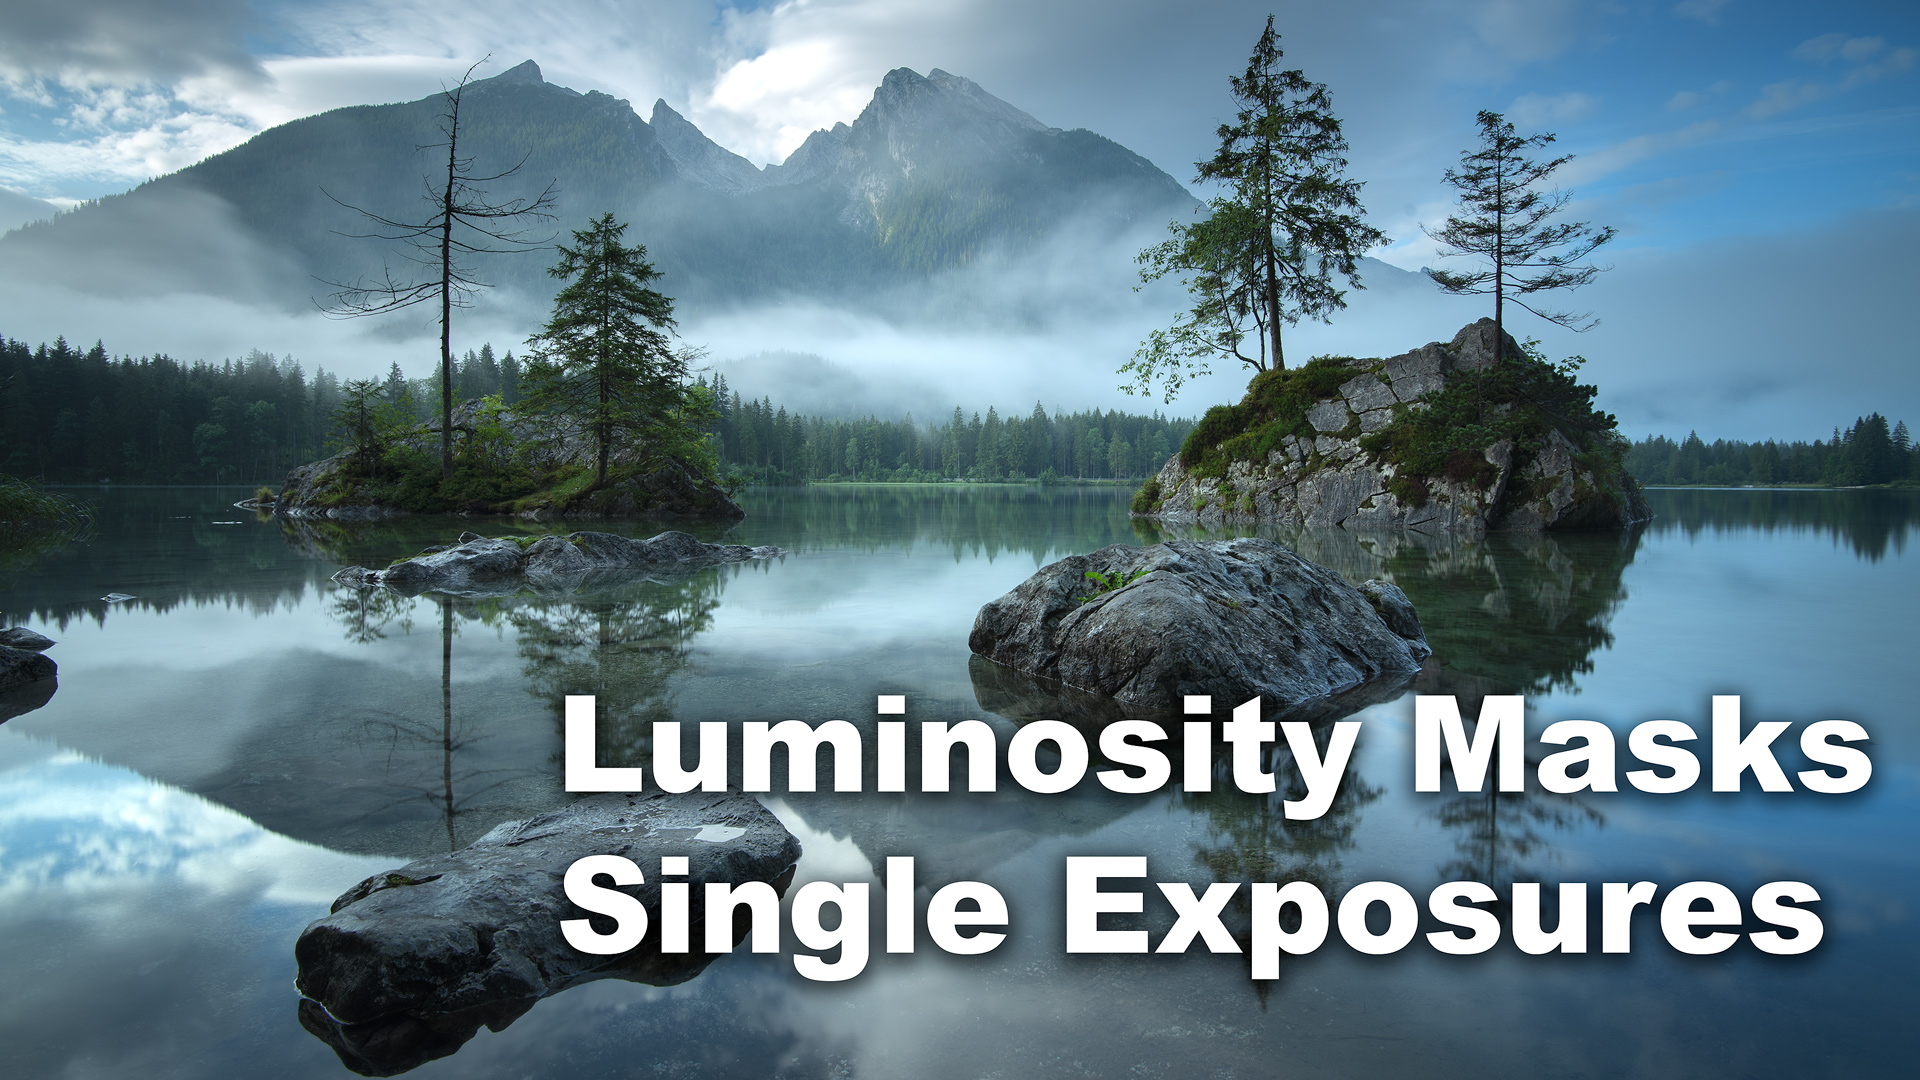 Tutorial: How To Use Luminosity Masks and Single Exposures (One Exposure)